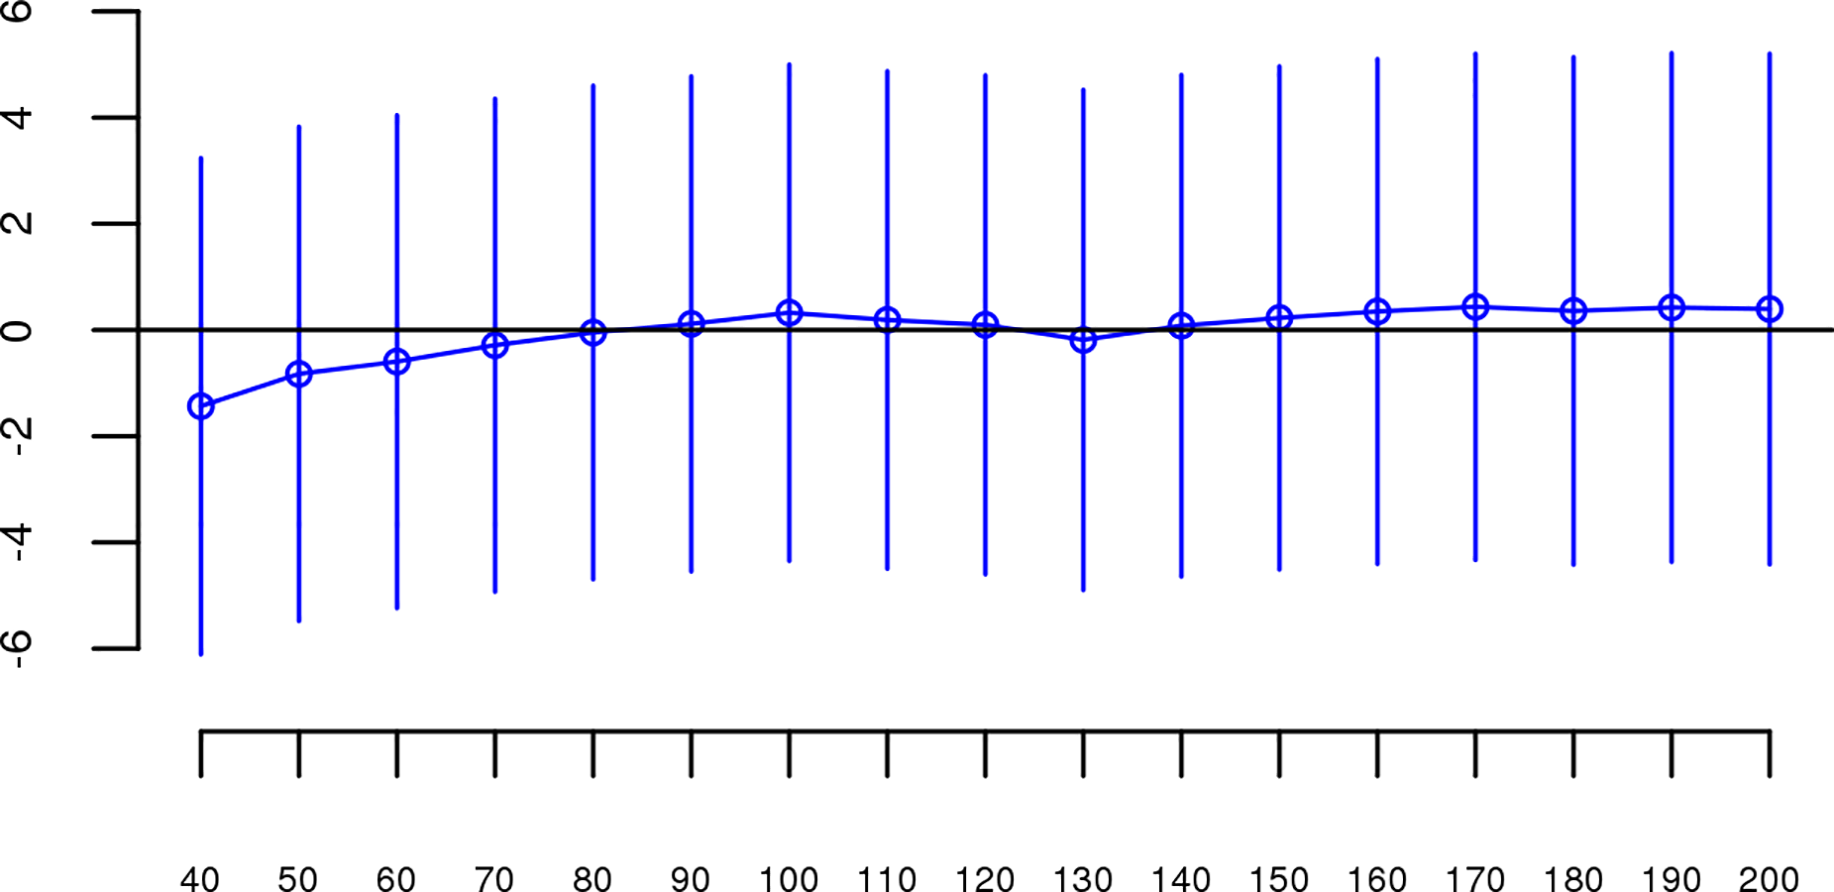 Slope estimates (the change in log odds for a 1% increase in <i>Froh</i>; points) and their 95% confidence intervals (bars) of <i>Froh</i> from unimputed SNP data predicting schizophrenia for different SNP thresholds of calling ROHs.